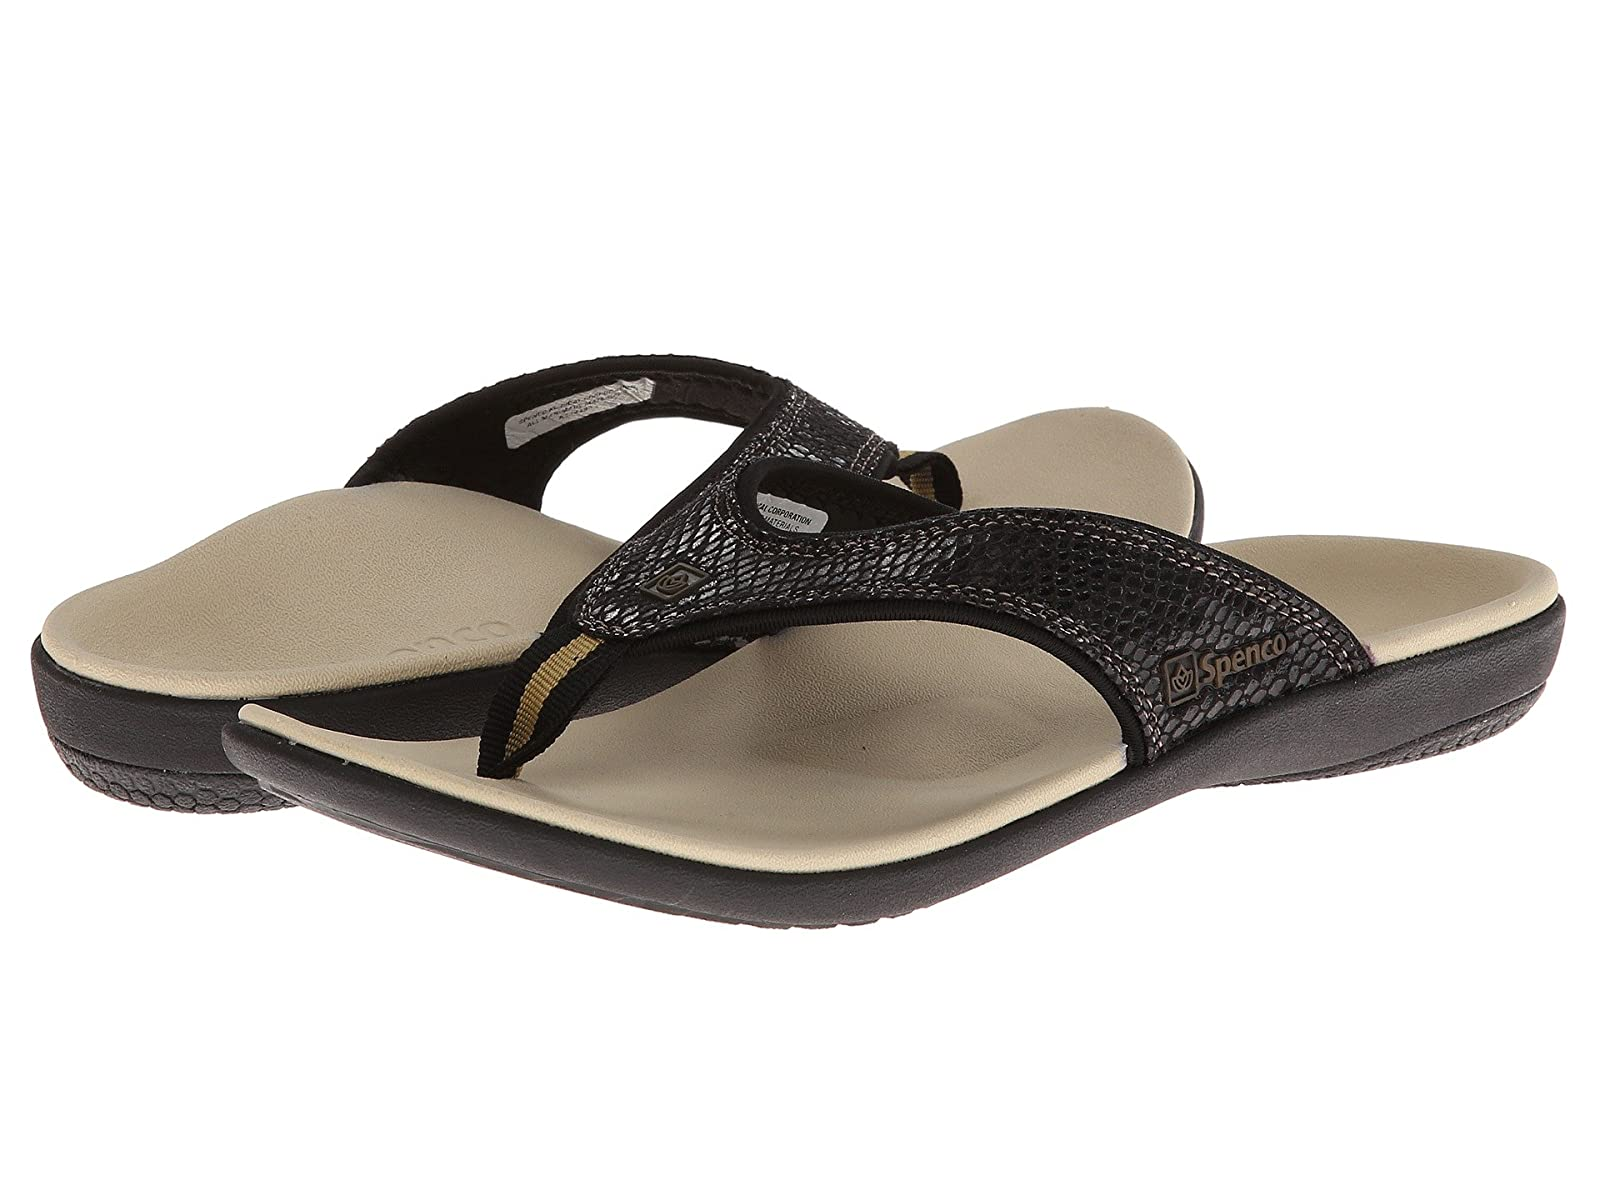 Men's/Women's:Spenco Yumi Snake: boutique you to pick you boutique up f1359f